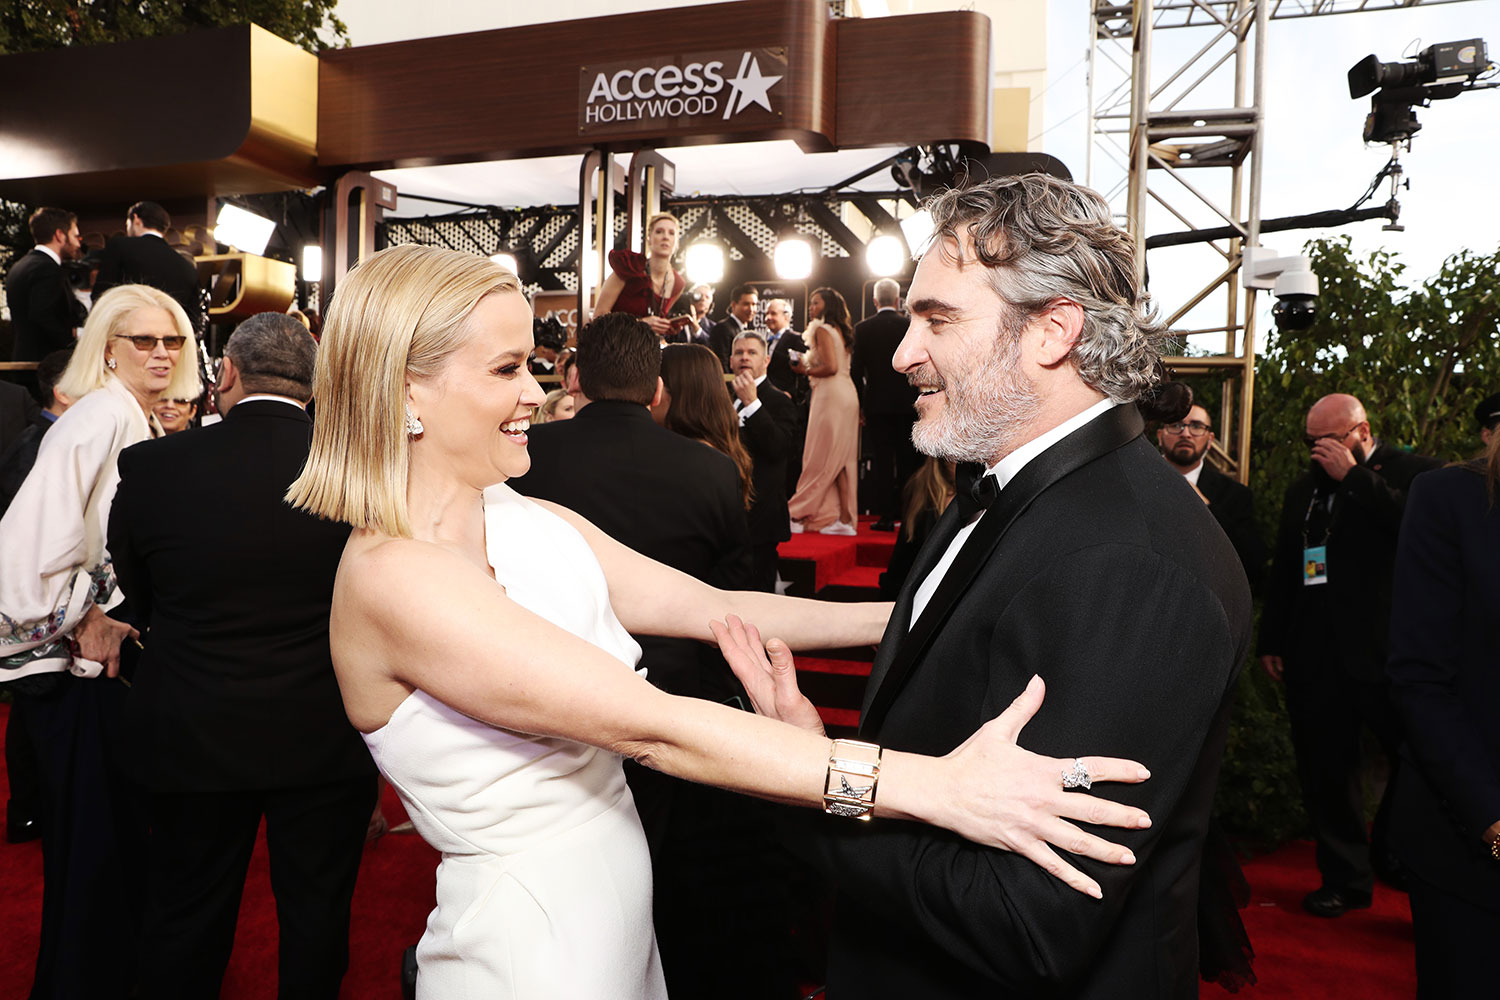 Reese Witherspoon and Joaquin Phoenix